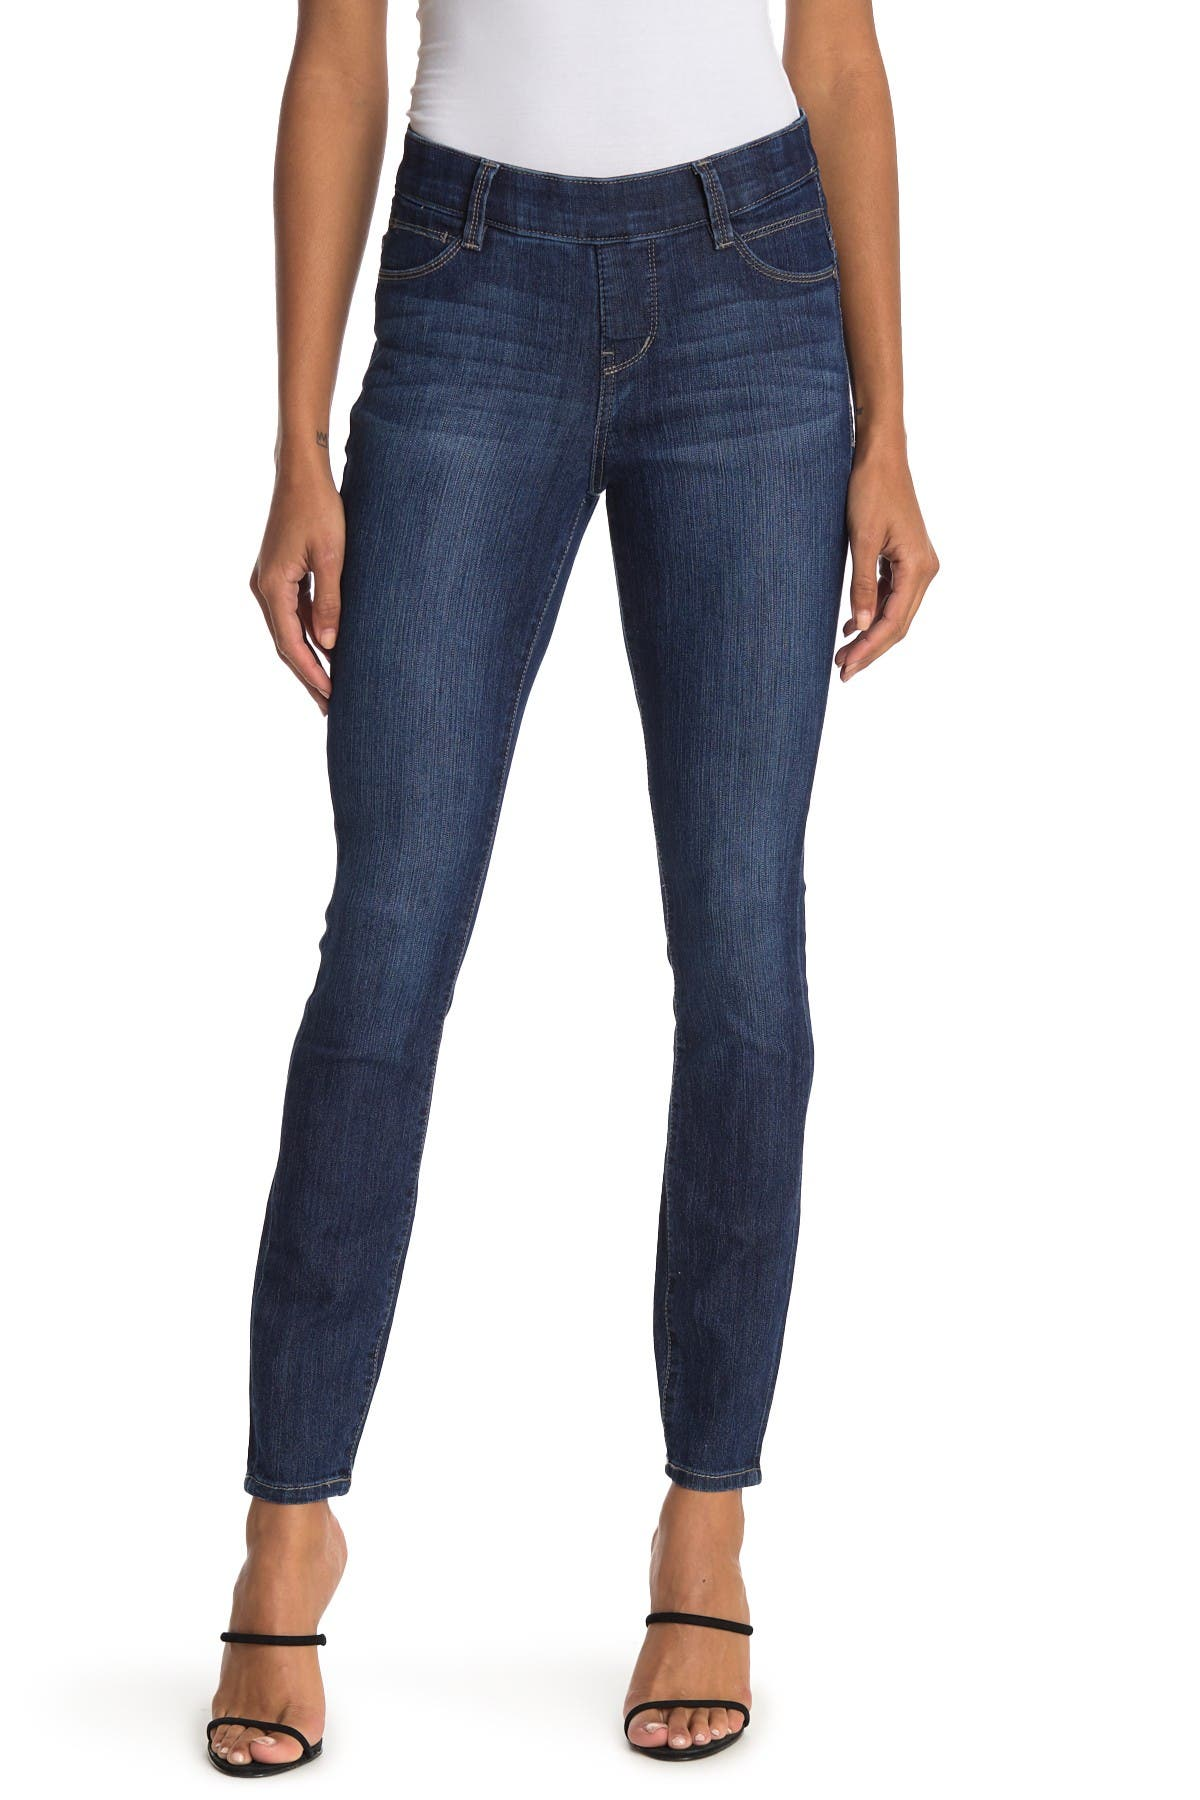 Image of JAG Jeans Macie Pull-On Skinny Jeans